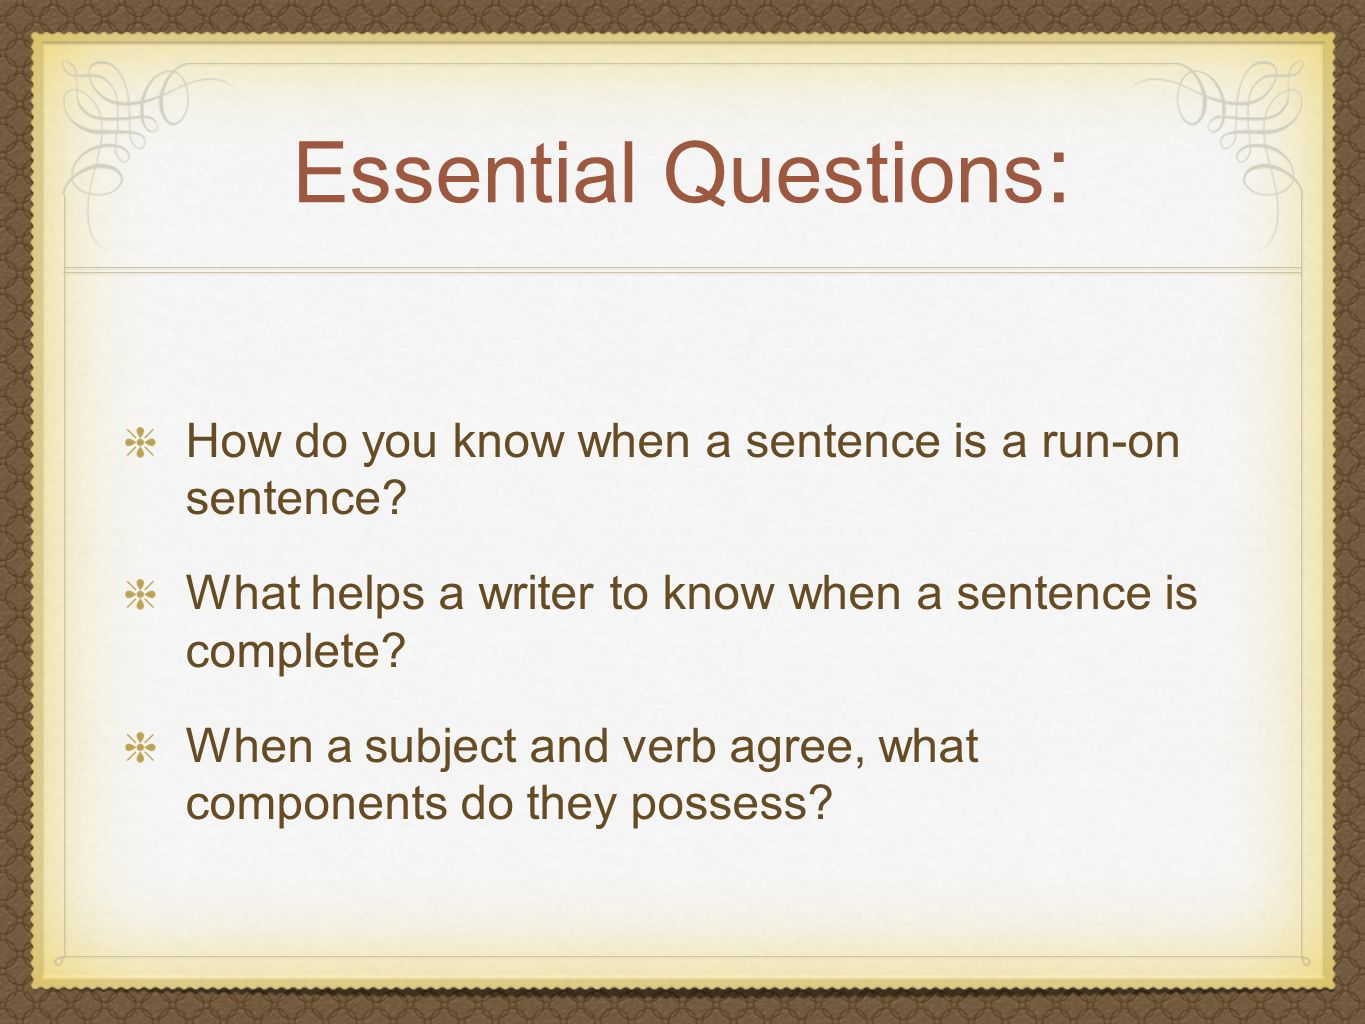 Essential Questions : How do you know when a sentence is a run-on sentence? What helps a writer to know when a sentence is complete? When a subject an